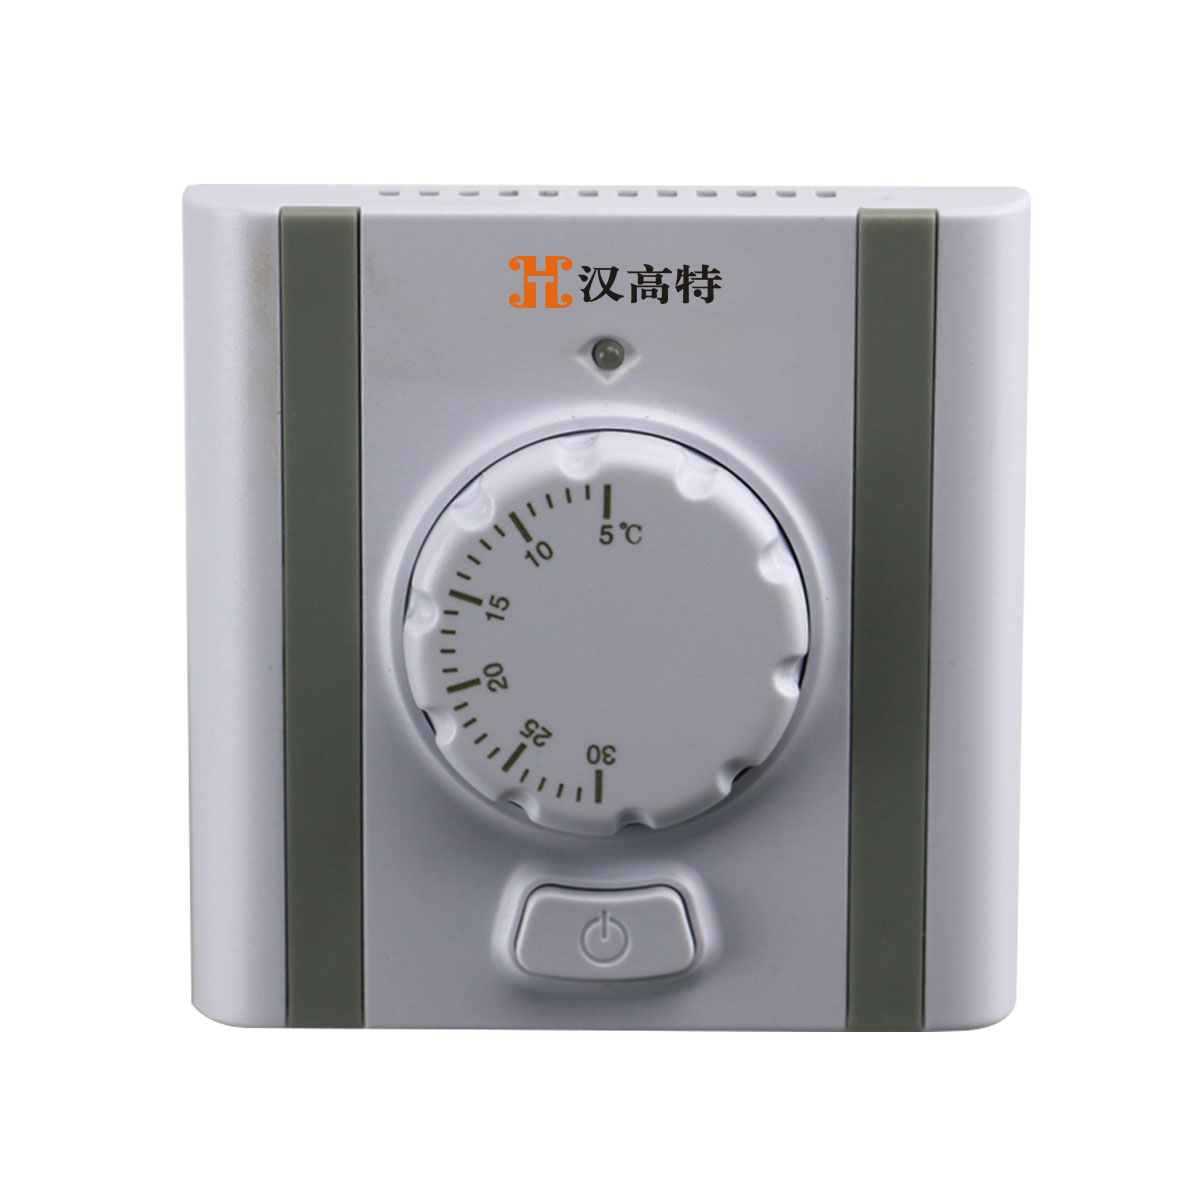 Mechanical knob thermostat